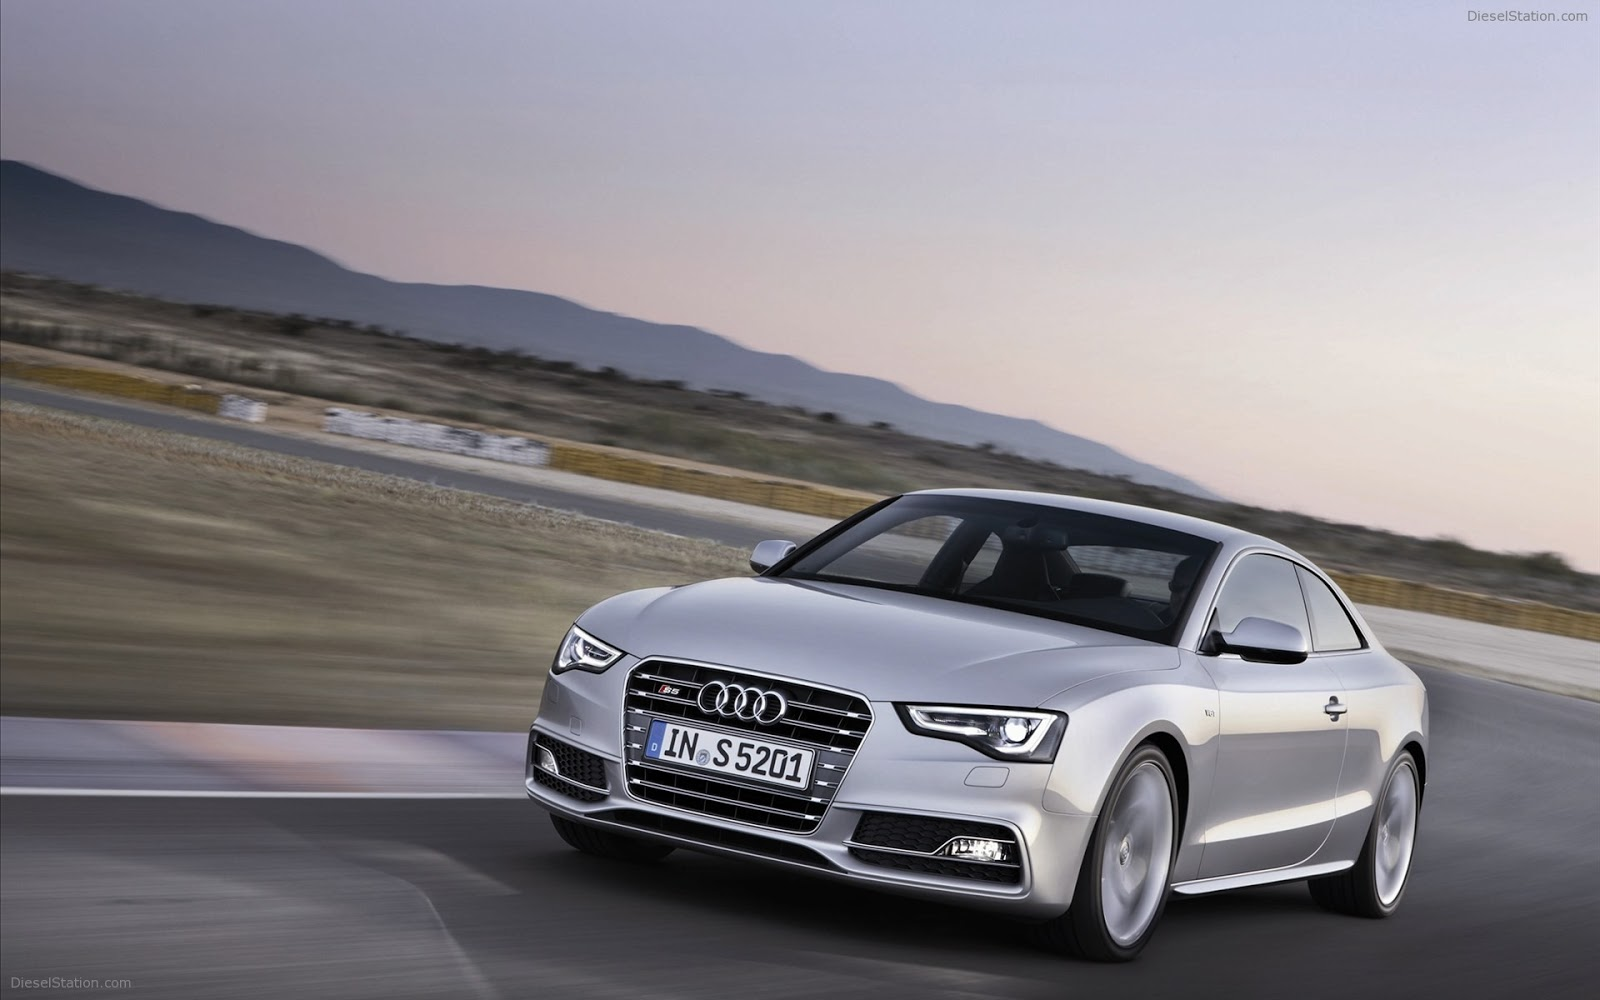 top 27 most beautiful and dashing audi car wallpapers in hd - tipztop